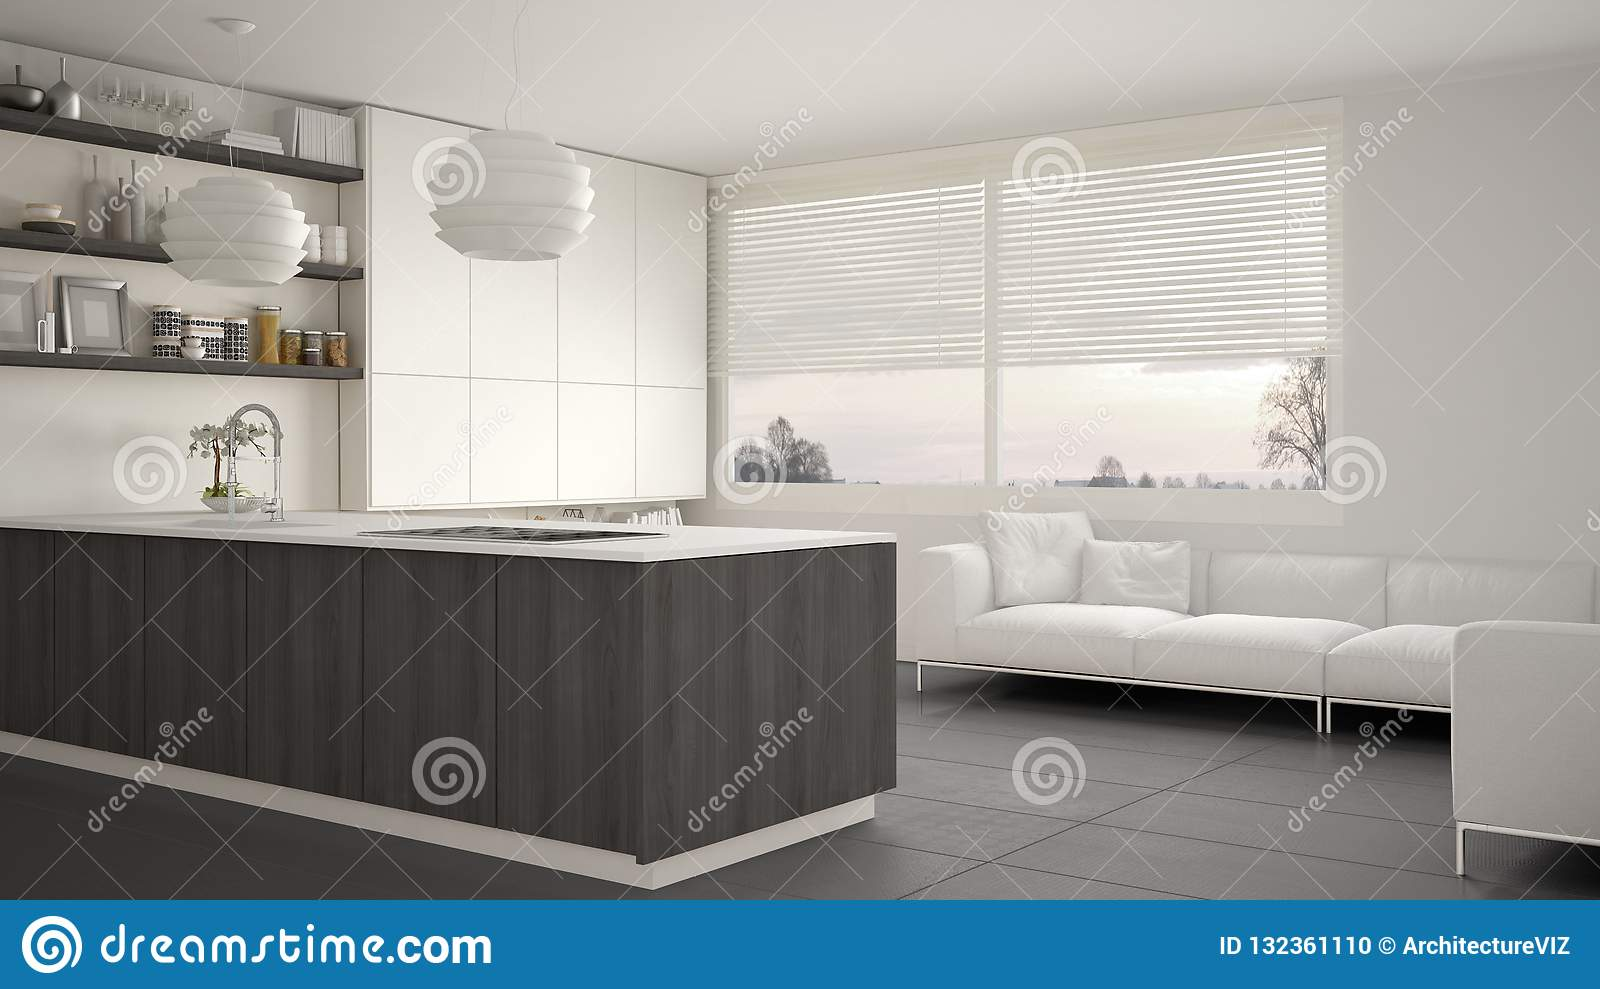 Modern white, gray and wooden kitchen with shelves and cabinets, sofa and panoramic window. Contemporary living room, minimalist a